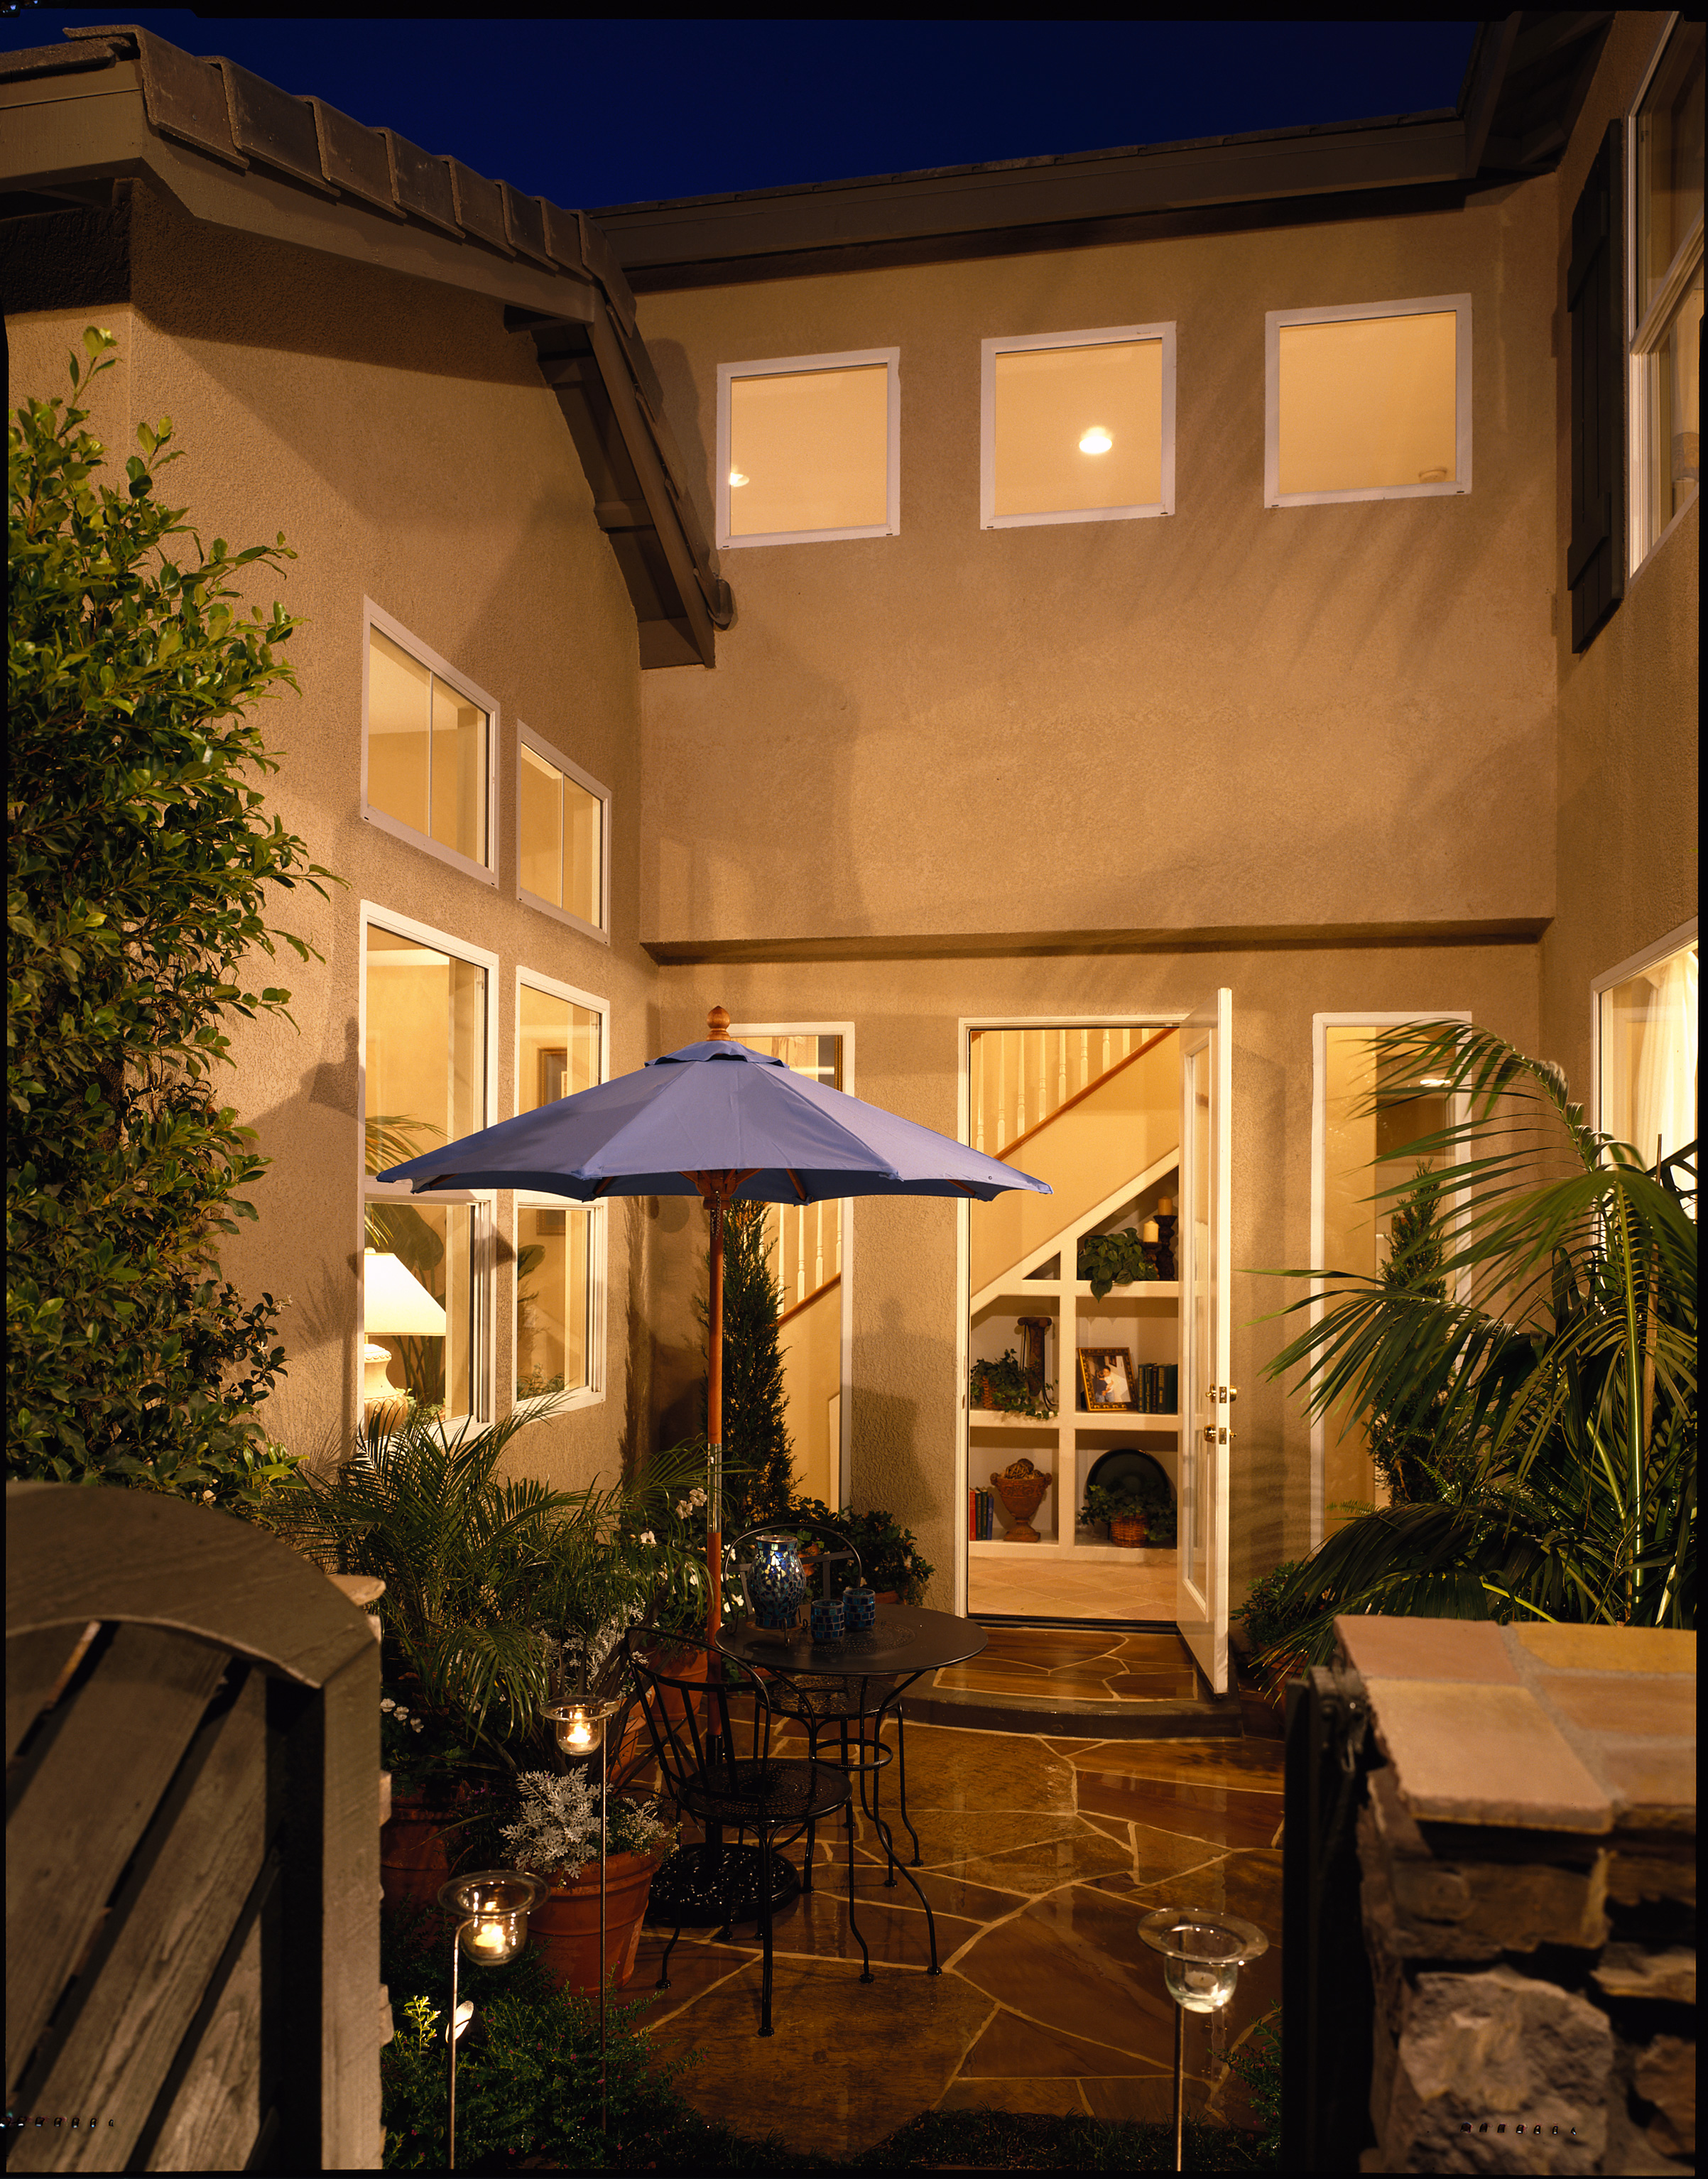 Swinging Patio Doors. Swinging ... & Swinging Patio Doors | Replacement Windows Bradenton -- Manasota ...